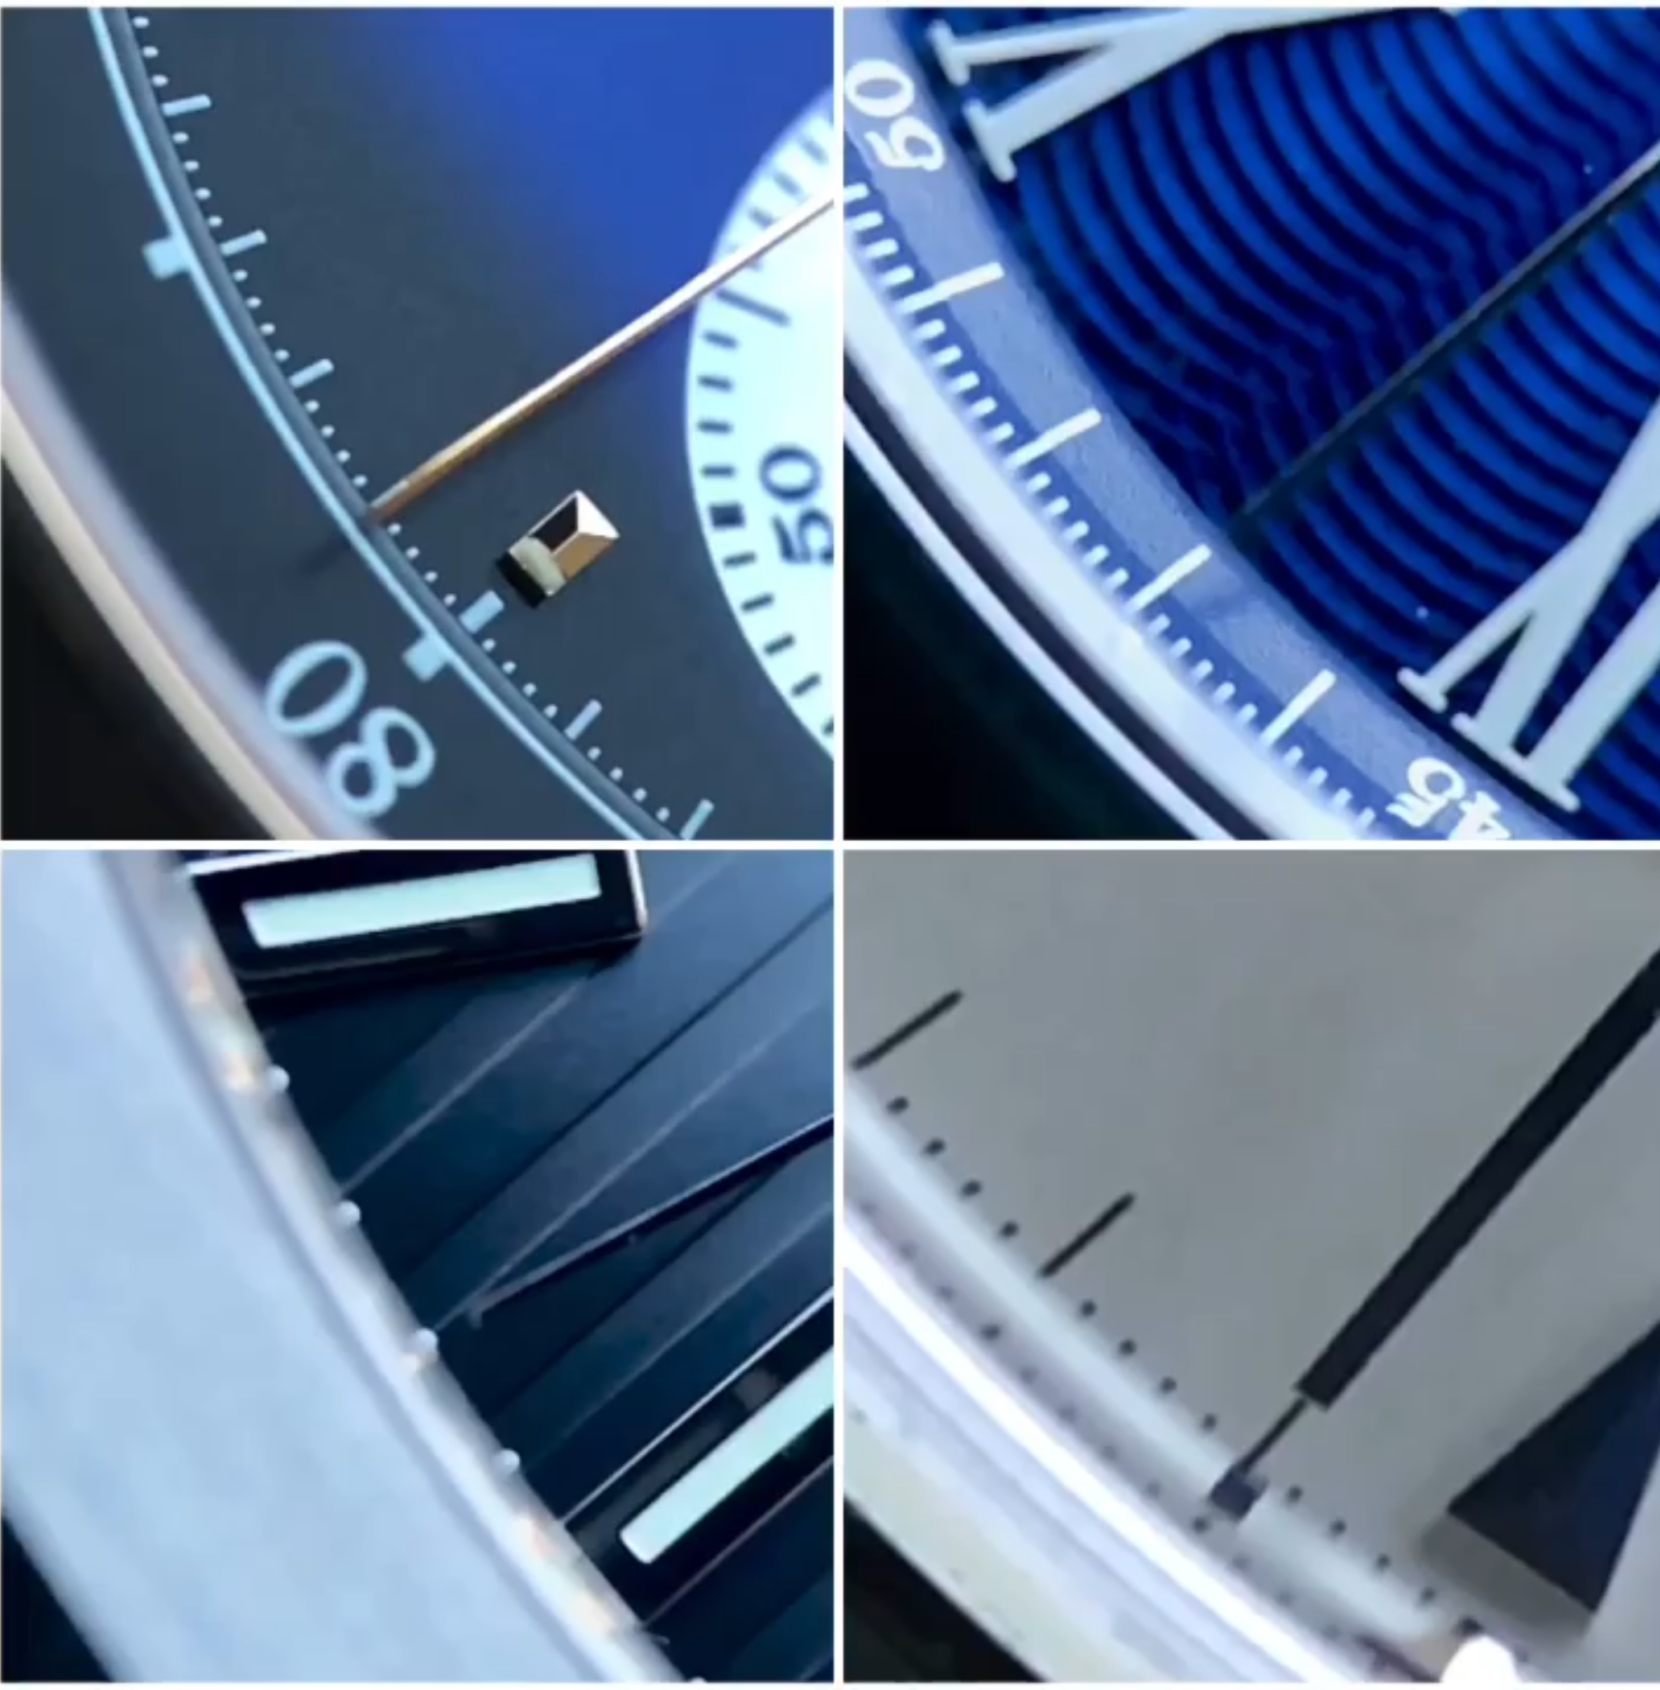 Watch four different vibrations per hour (VPH) in slo-mo, care of the macro maestro @horomariobro